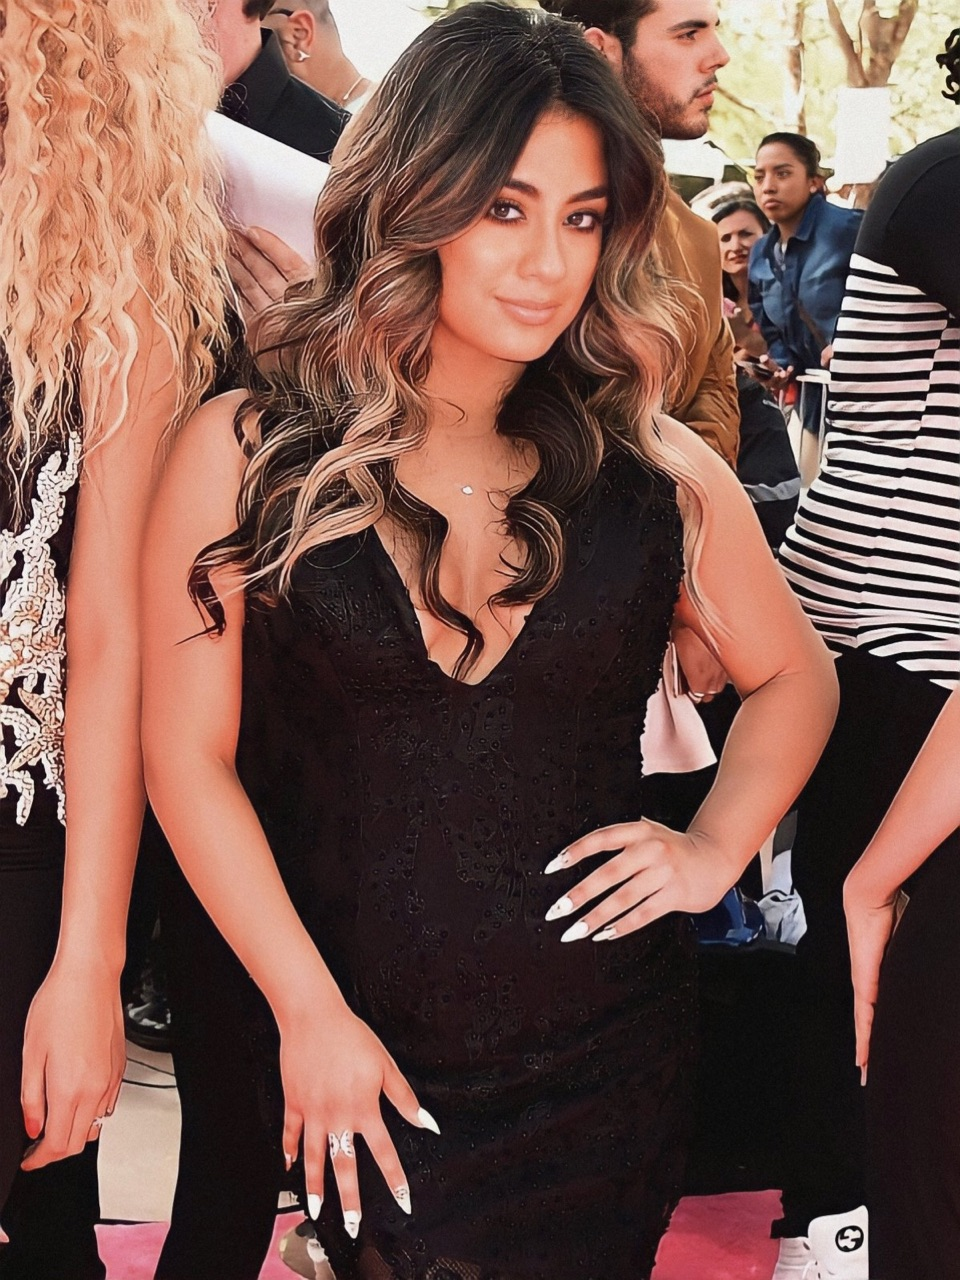 Image by fifth harmony source